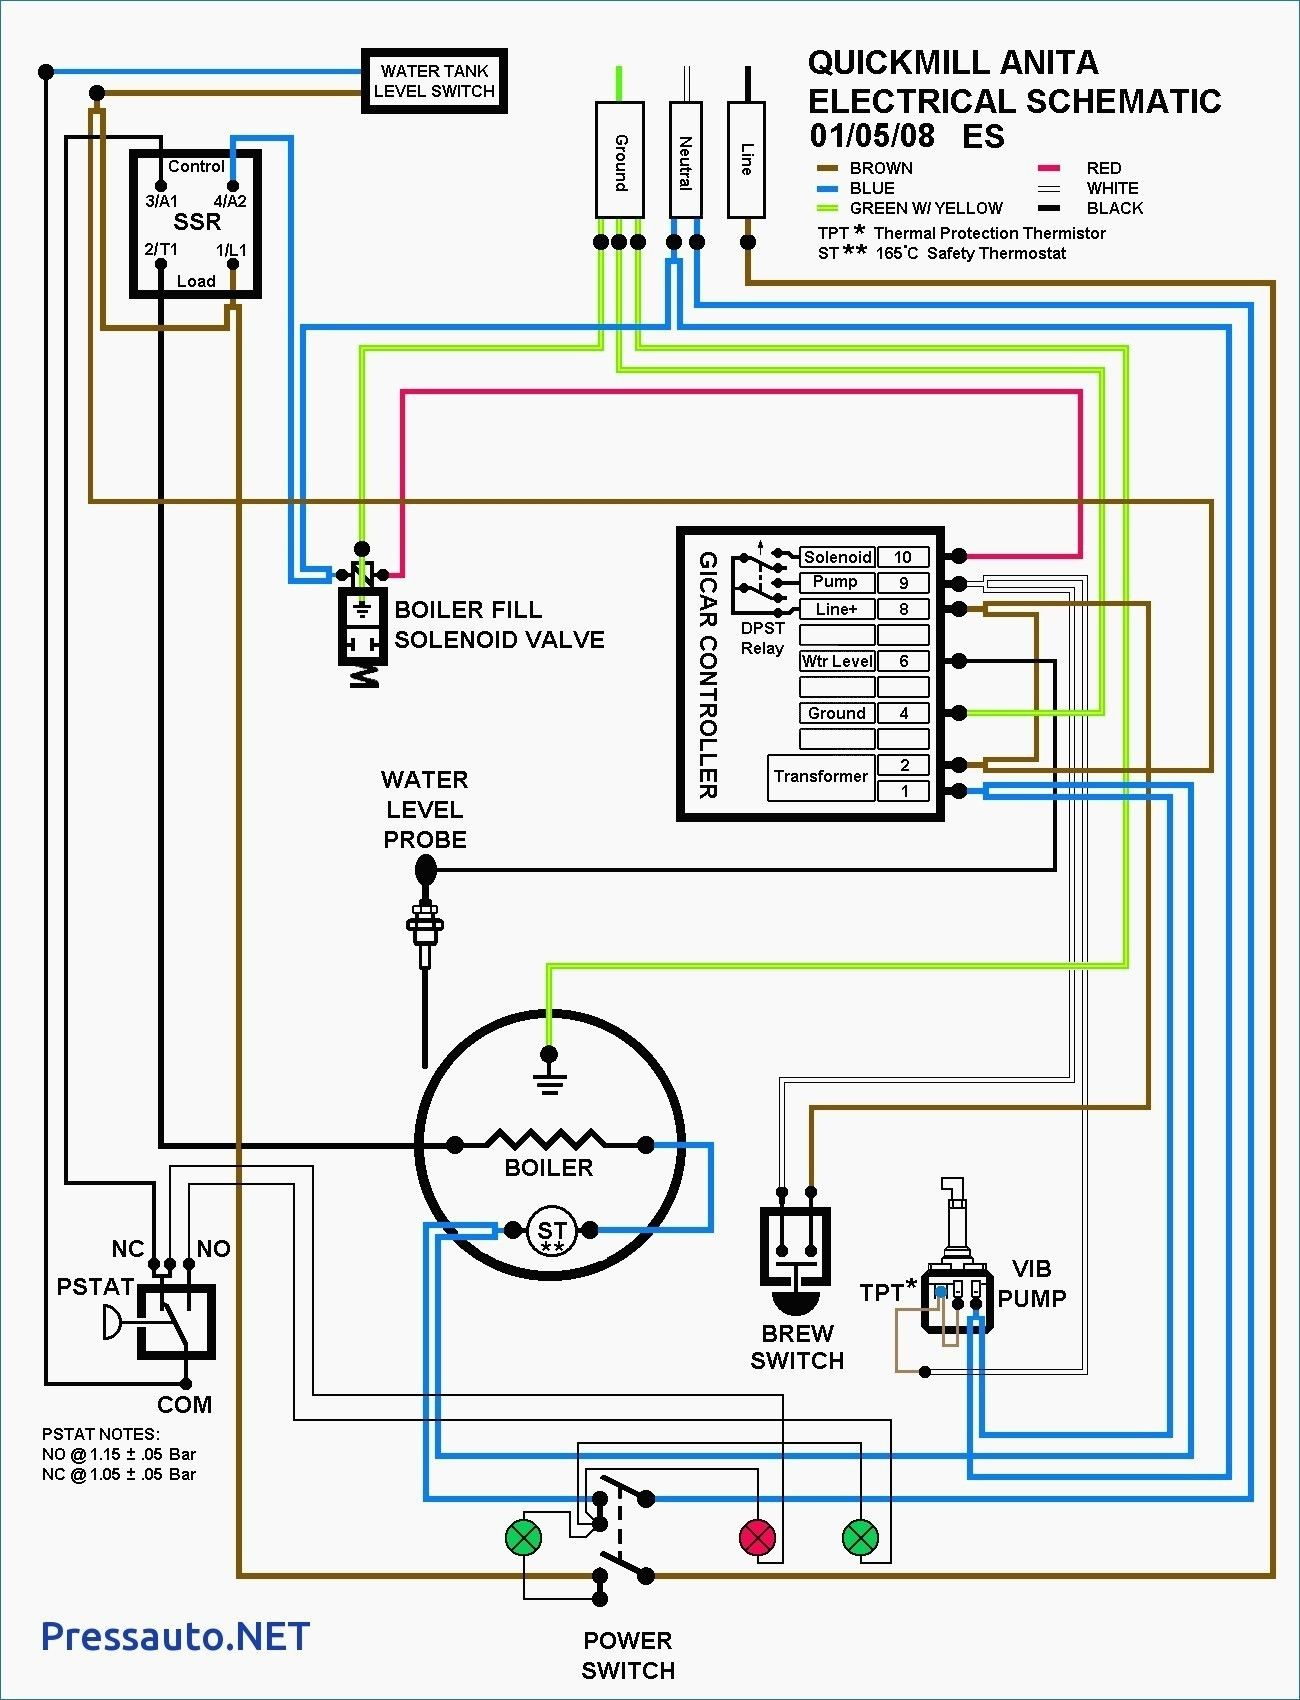 Luxury Wiring Diagram For A Y Plan Heating System Diagrams Digramssample Diagramimages Wiringdiagramsample Wiringdiagram